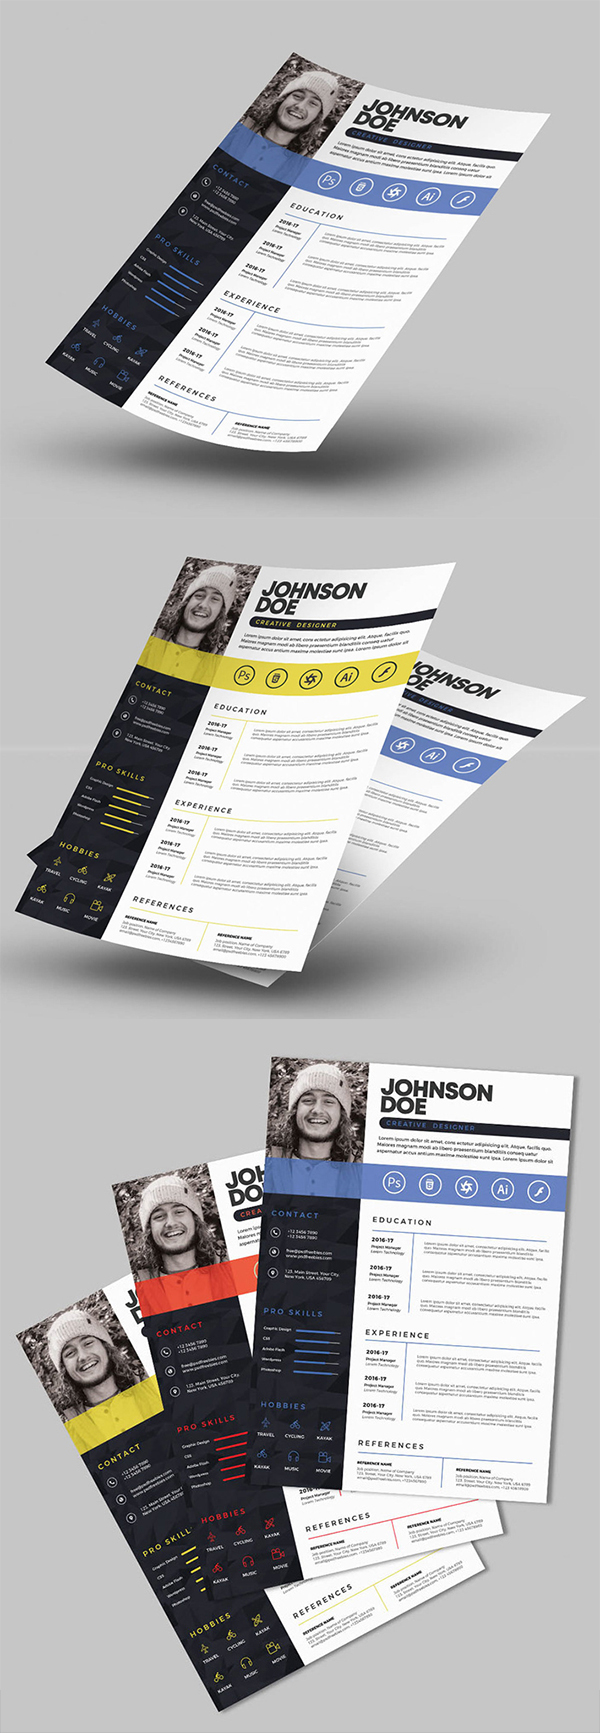 Free Download Creative Resume / CV Template Design (3 Color Options)